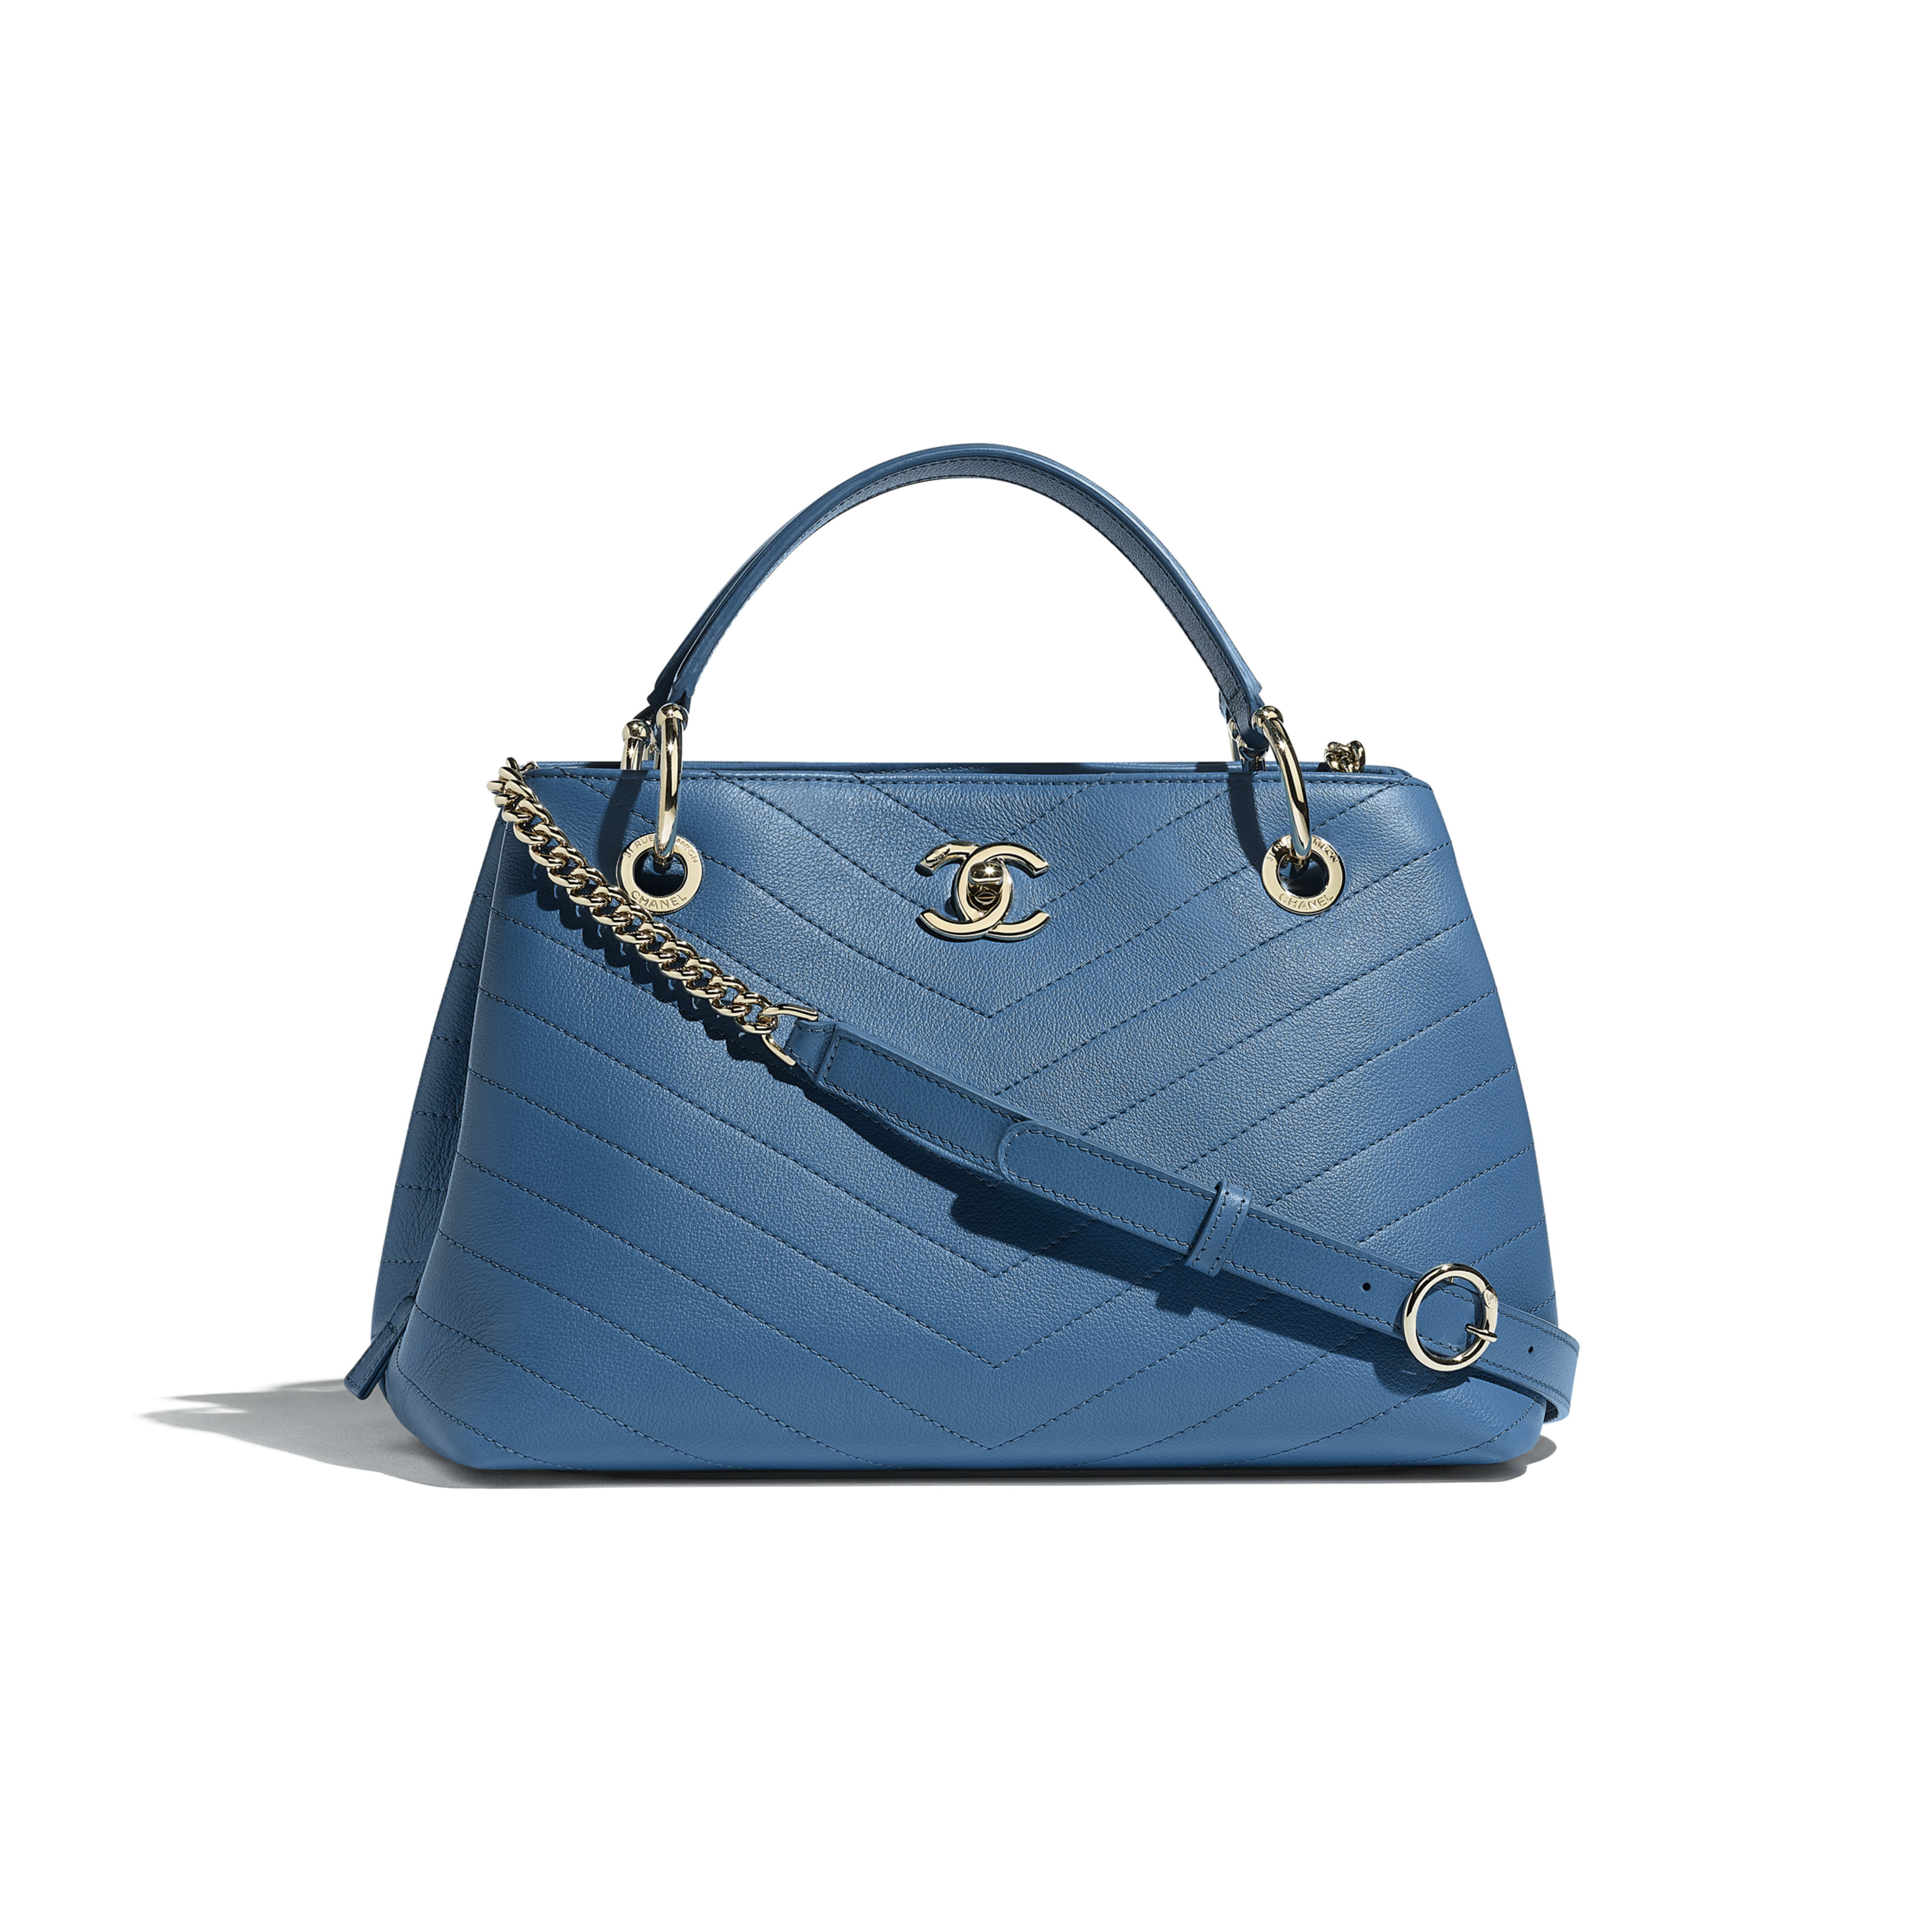 Small Zipped Shopping Bag - Blue - Grained Calfskin & Gold-Tone Metal - Default view - see full sized version